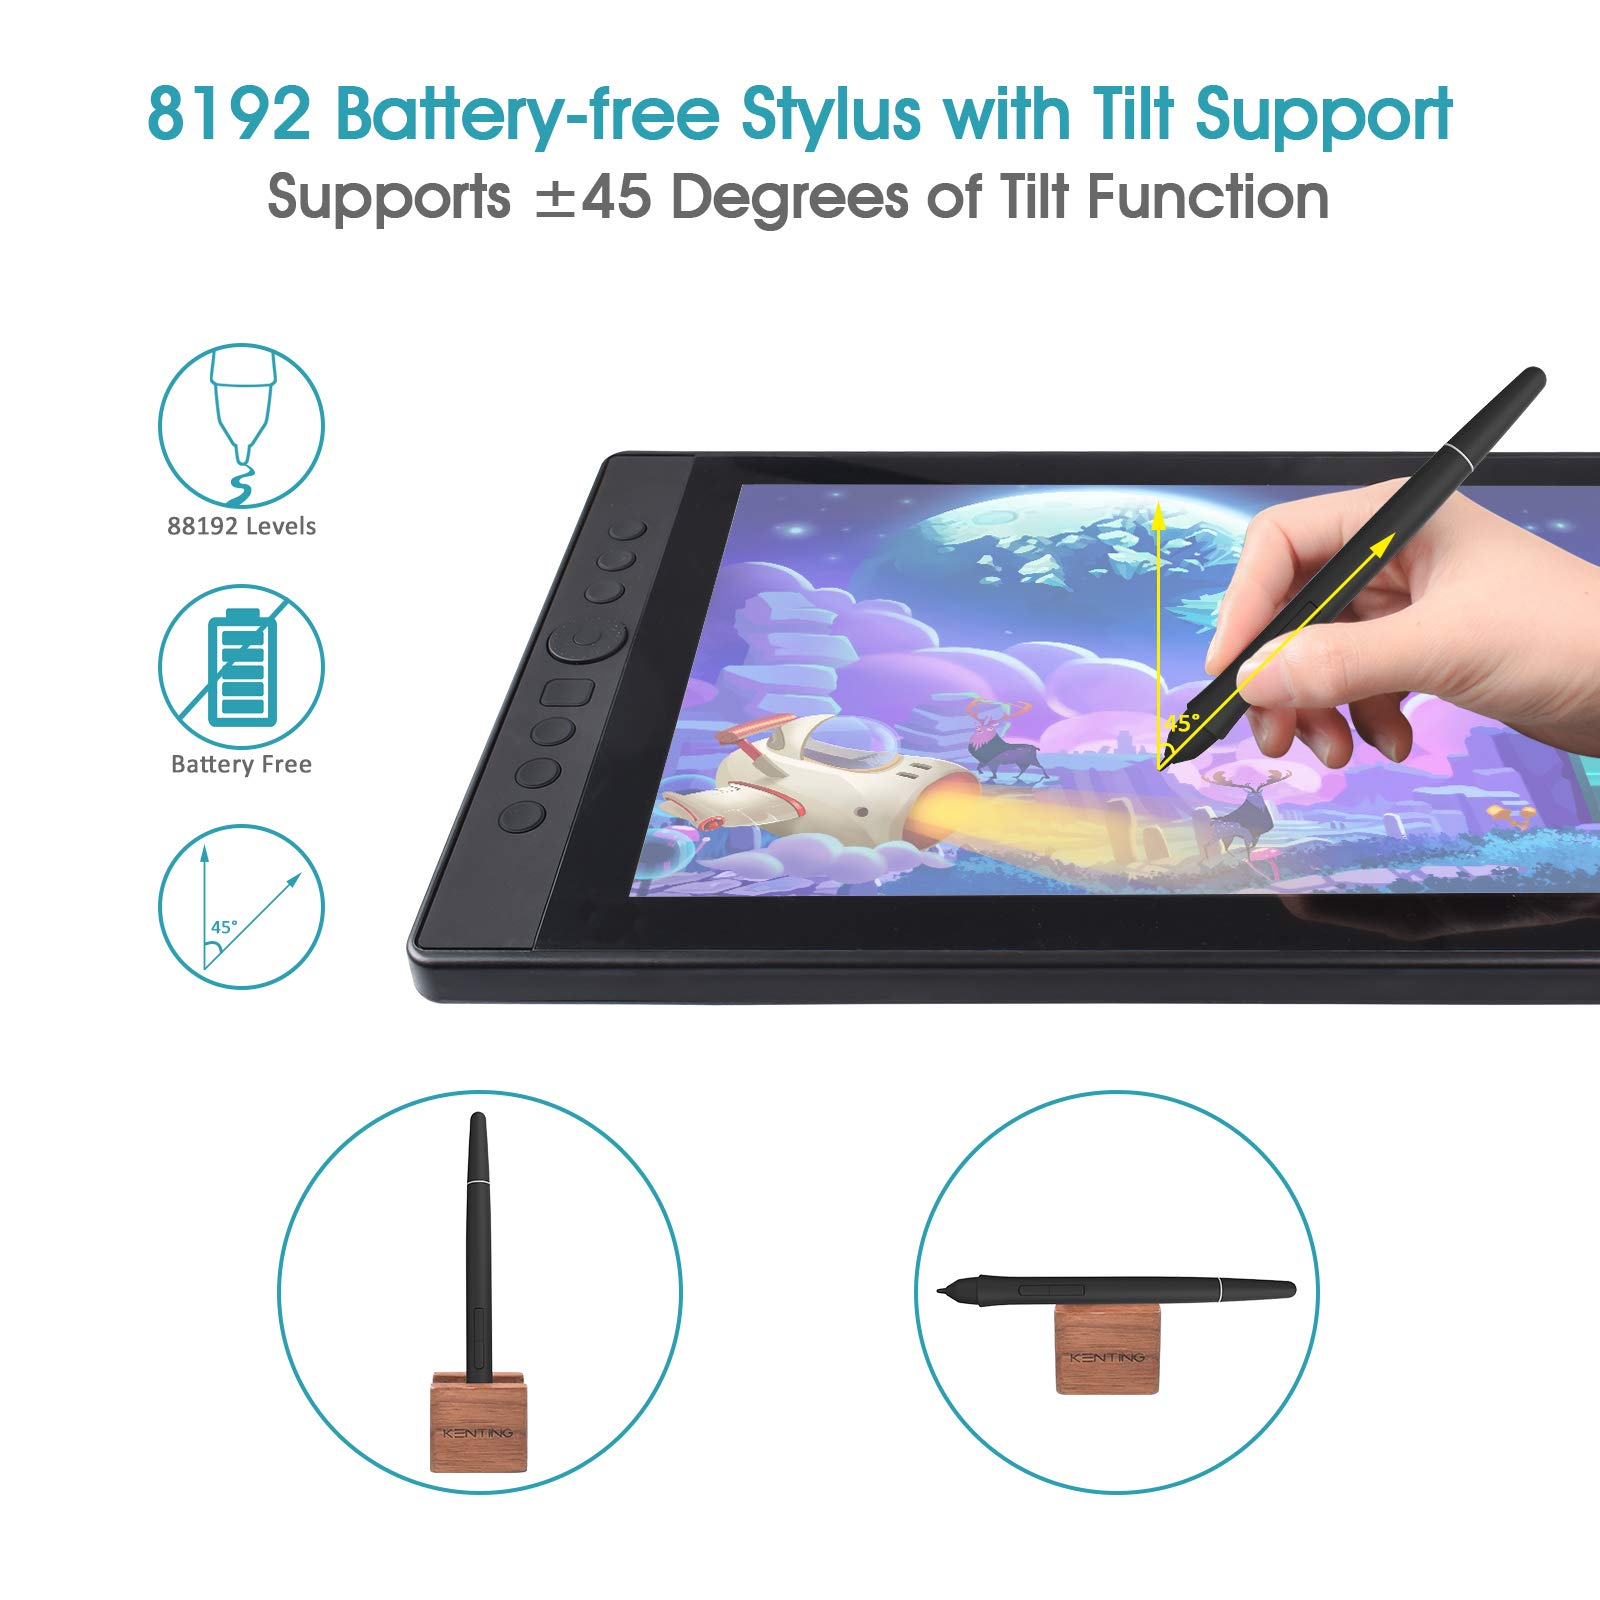 Kenting KT16 Drawing Tablet with Screen IPS Graphic Pen Display 15.6 inches Drawing Monitor Full HD 7 Express Keys and Dial Wheel 8192 Level Pressure Battery Free Stylus for Digital Art Windows Mac